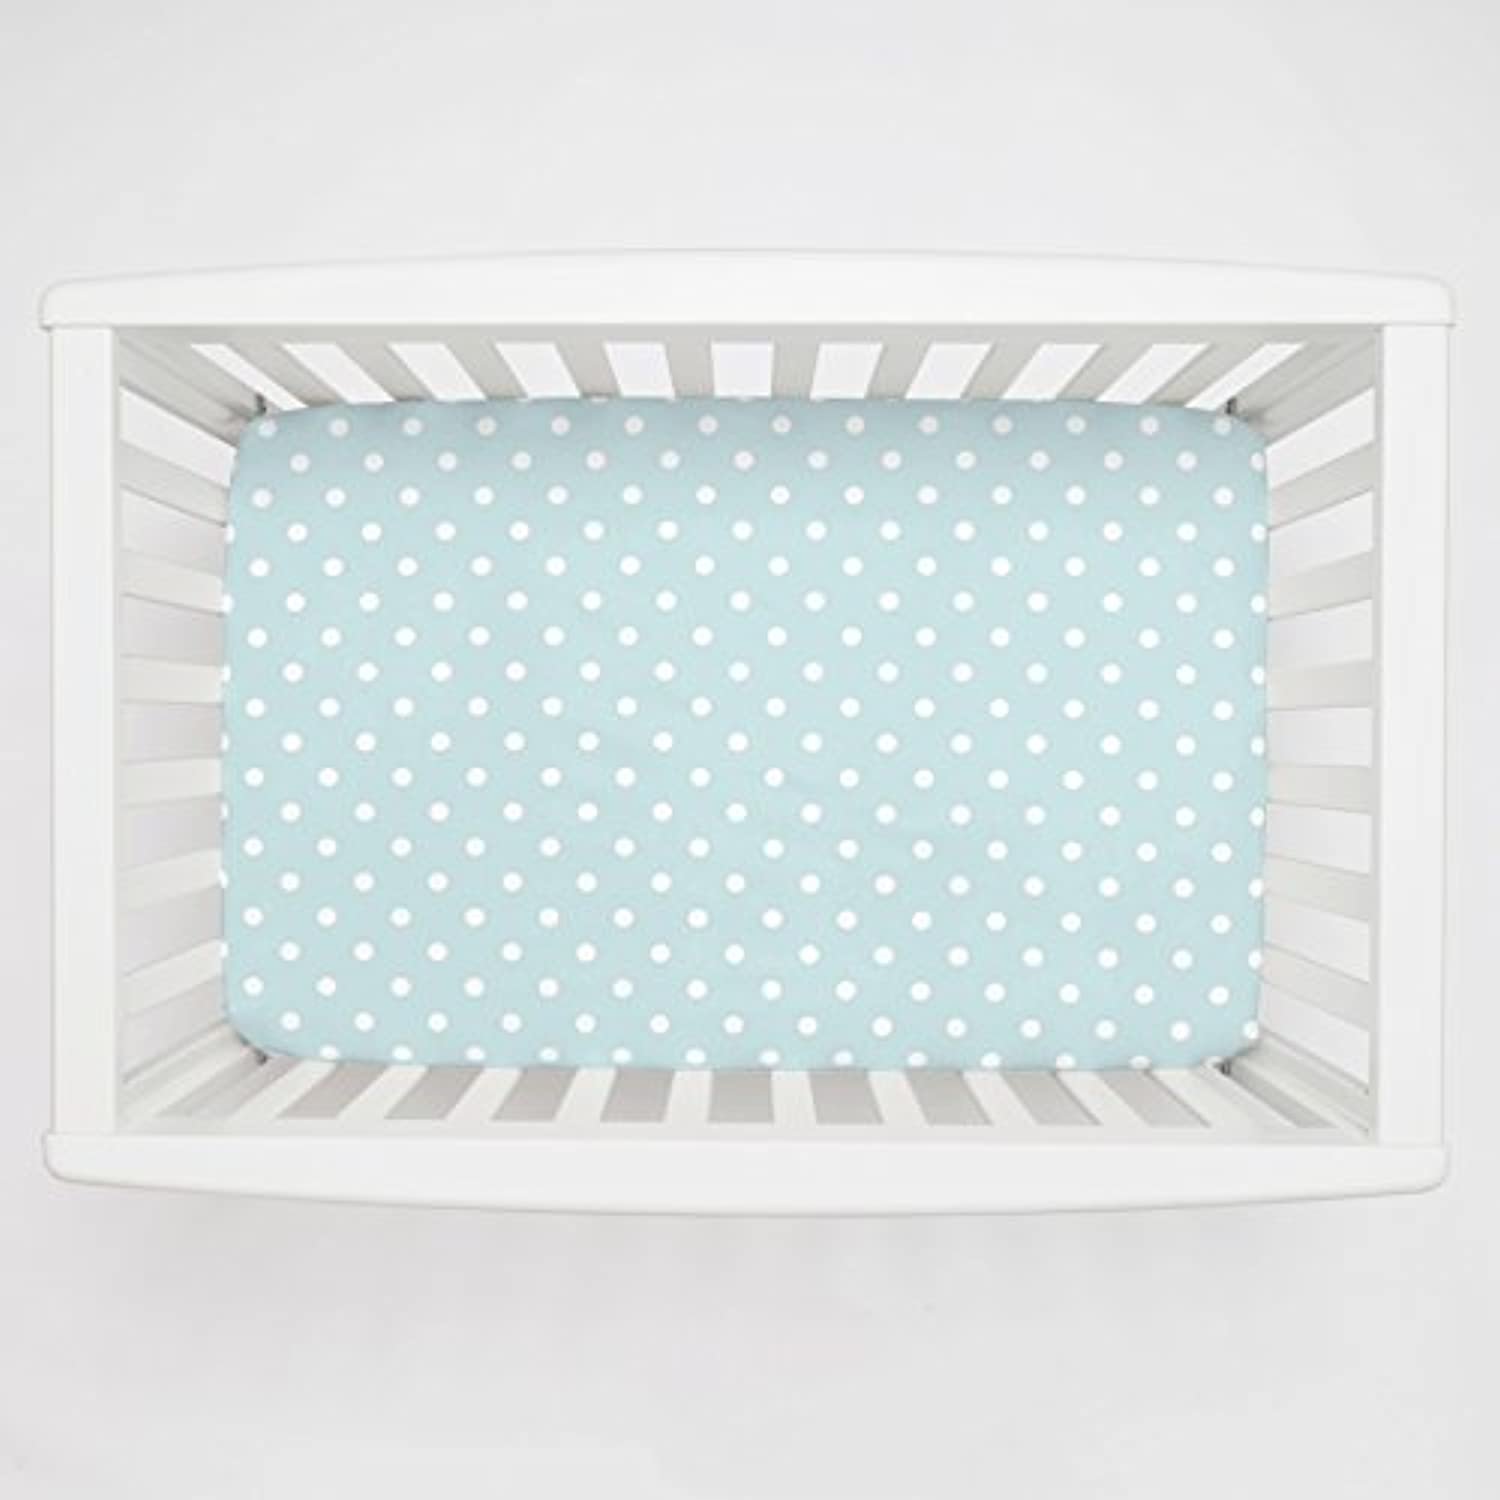 Carousel Designs Mist and White Polka Dot Mini Crib Sheet 5-Inch-6-Inch Depth by Carousel Designs